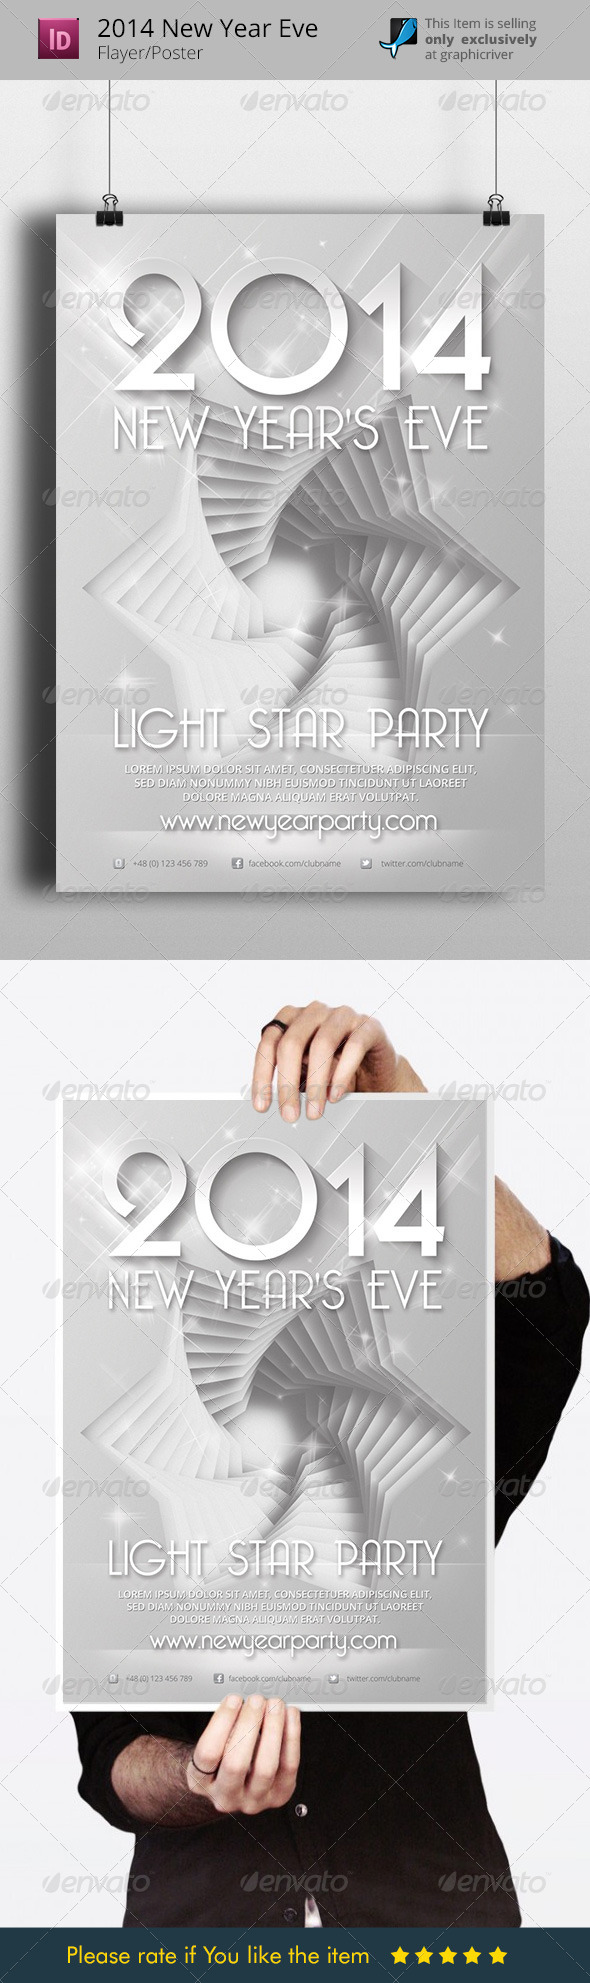 2014 New Years Eve Flyer Template - Holidays Events